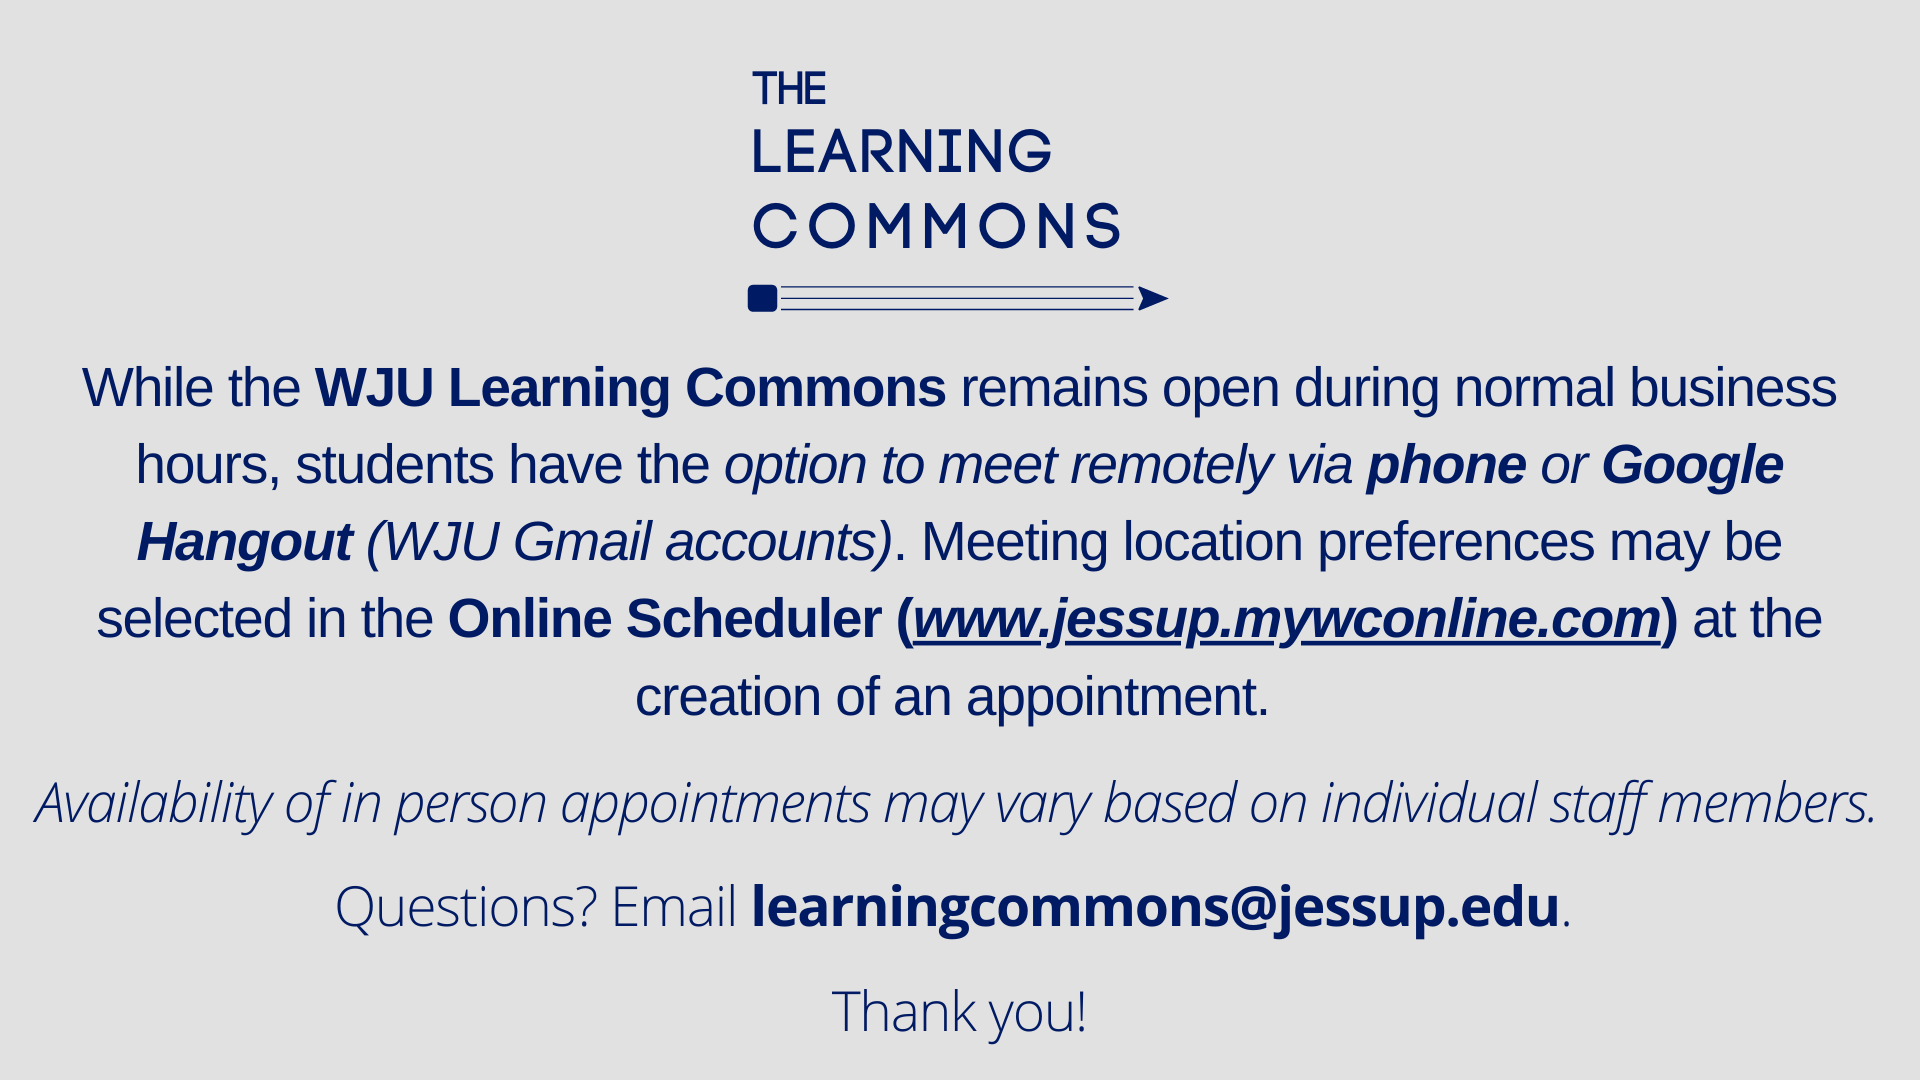 While the WJU Learning Commons remains open during normal business hours, students have the option to meet remotely via phone or Google Hangout (WJU Gmail accounts). Meeting location preferences may be selected in the Online Scheduler (www.jessup.mywconline.com)at the creation of an appointment. Availability of in person appointments may vary based on individual staff members. Questions? Email learningcommons@jessup.edu. Thank you!